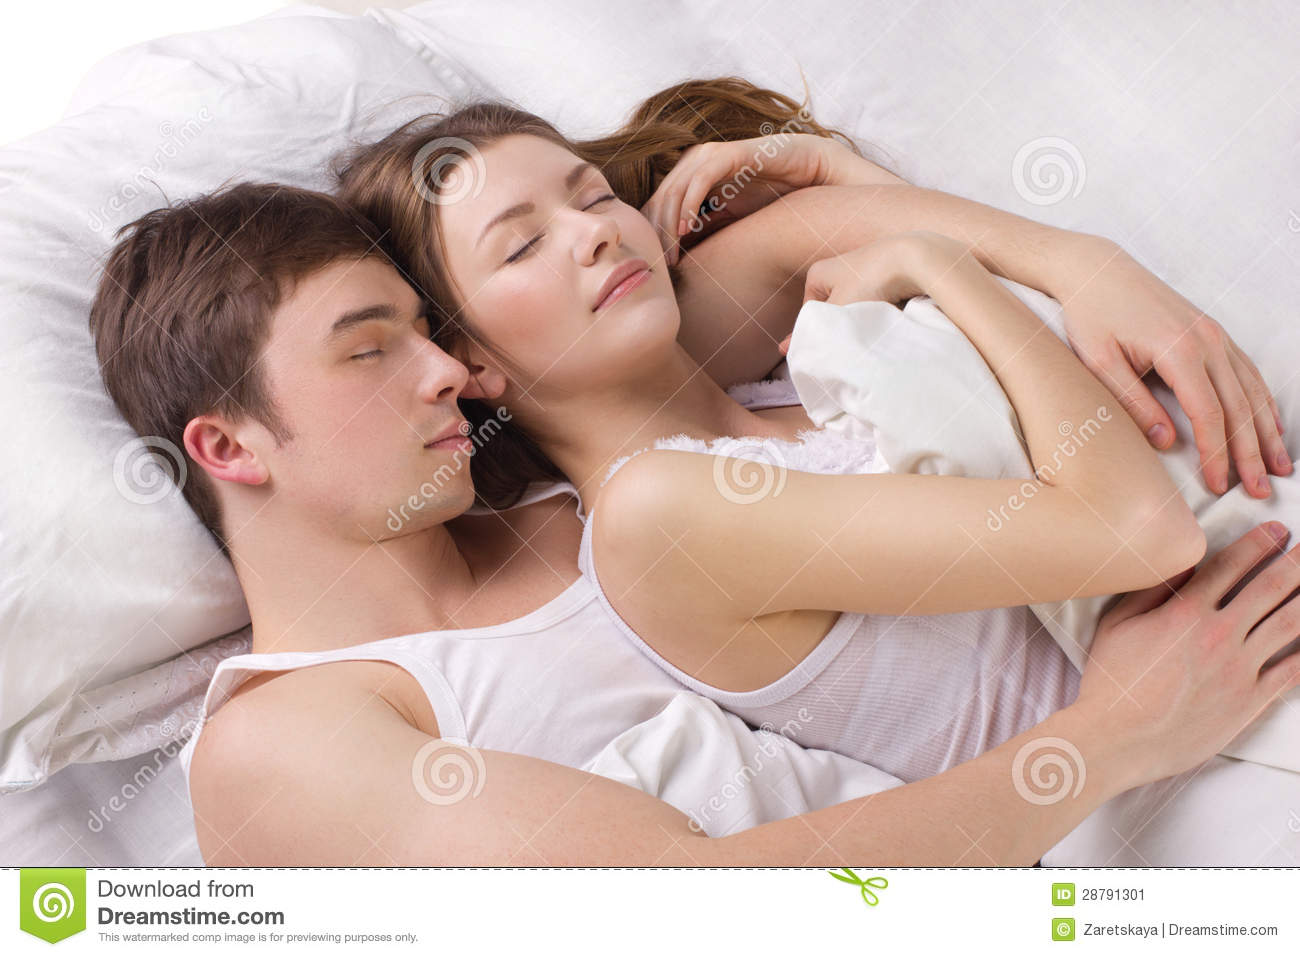 Man On Woman In Bed Pictures 22